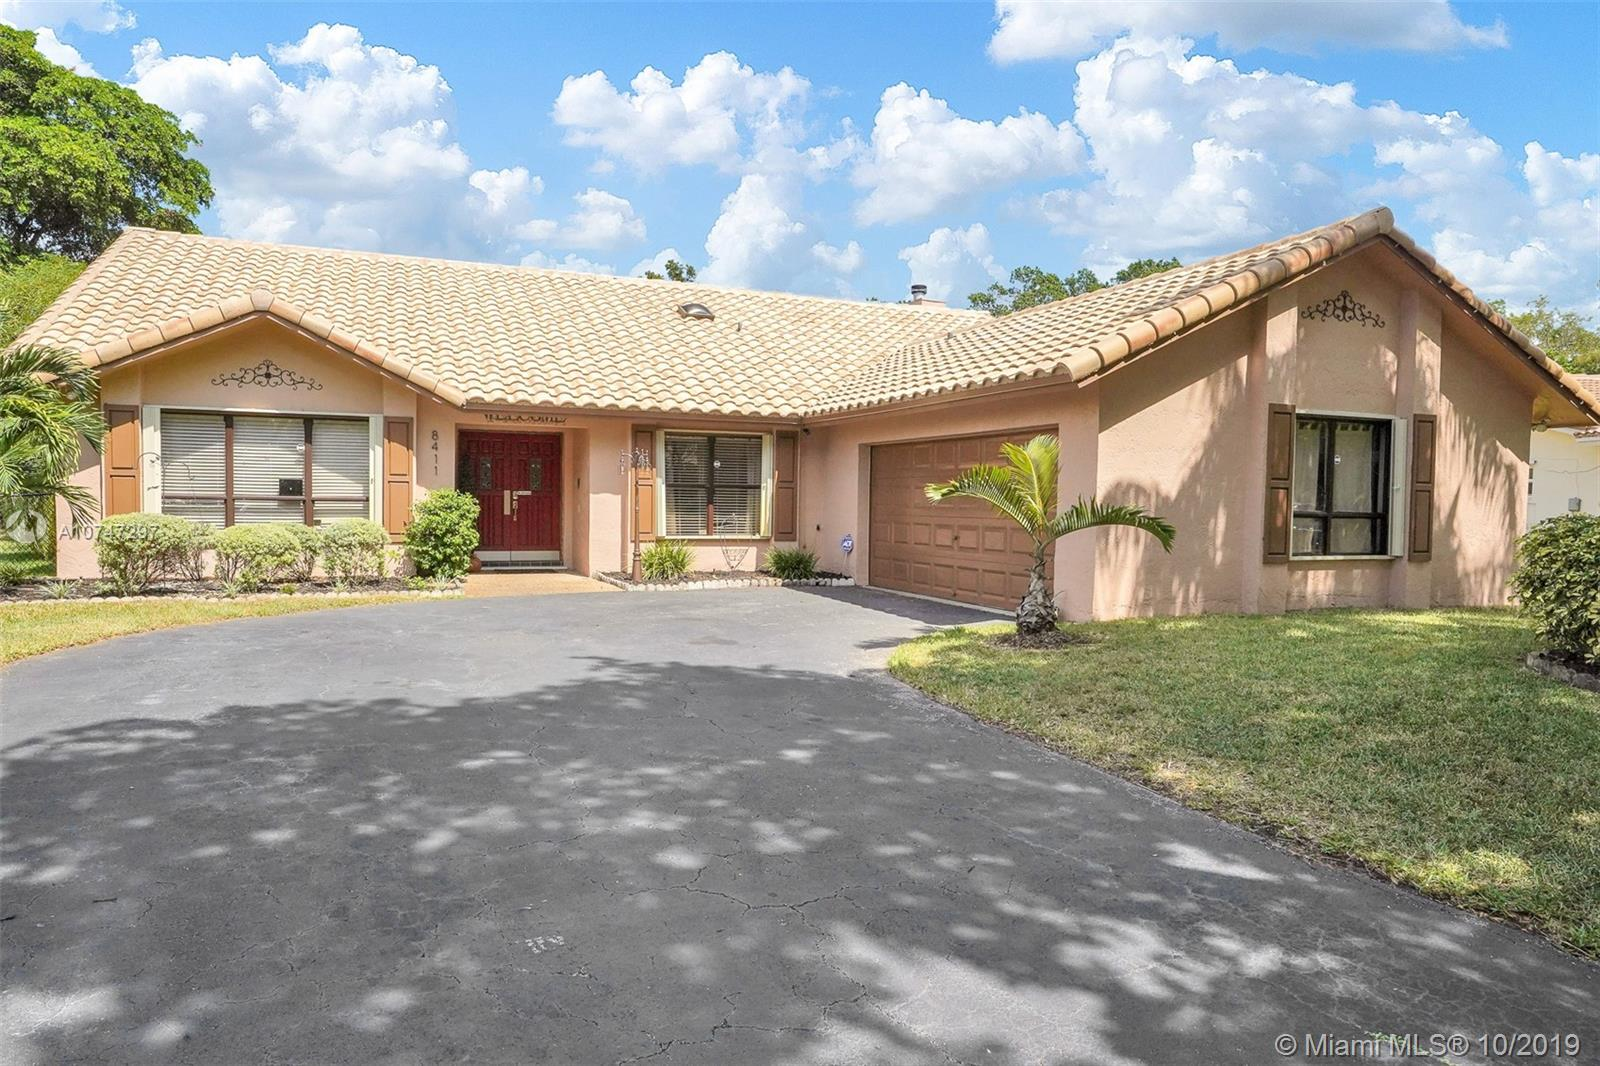 Property for sale at 8411 NW 3rd St, Coral Springs FL 33071, Coral Springs,  Florida 33071